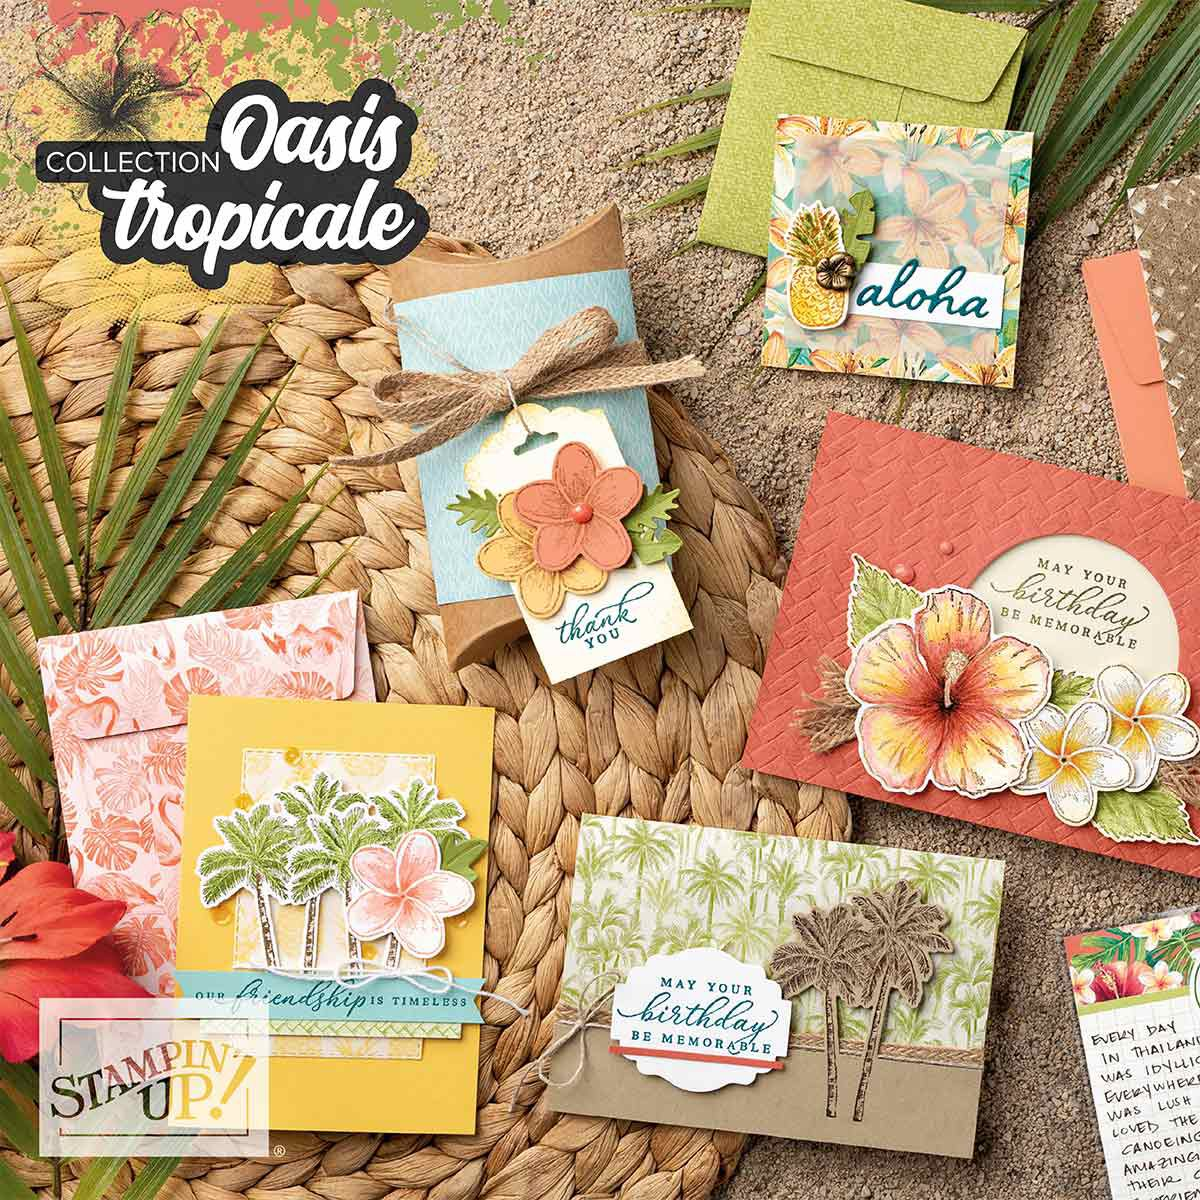 Stampin'Up! Video gratuite collection Oasis Tropicale / Tropical Oasis Suite By Stampin' Up!